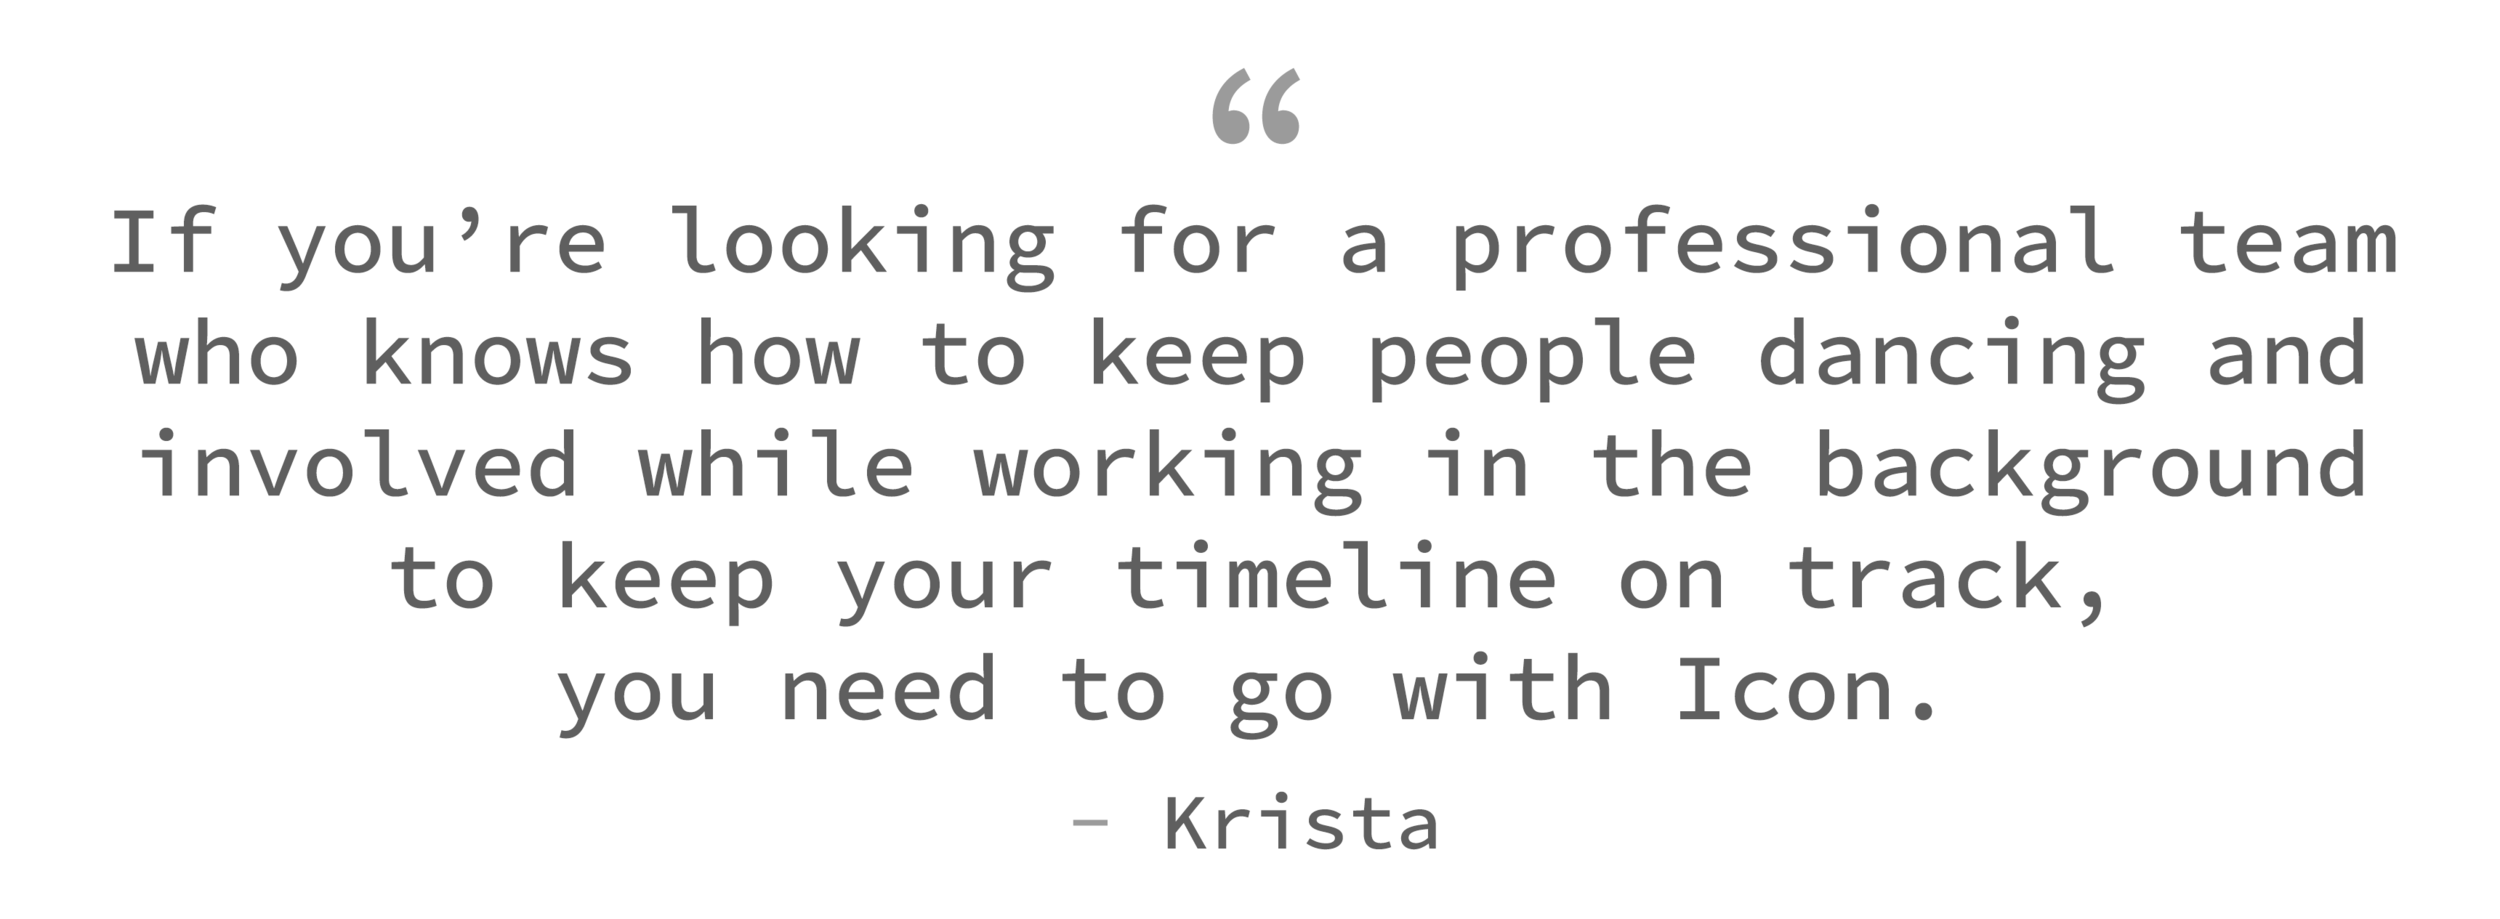 Review_Krista.png